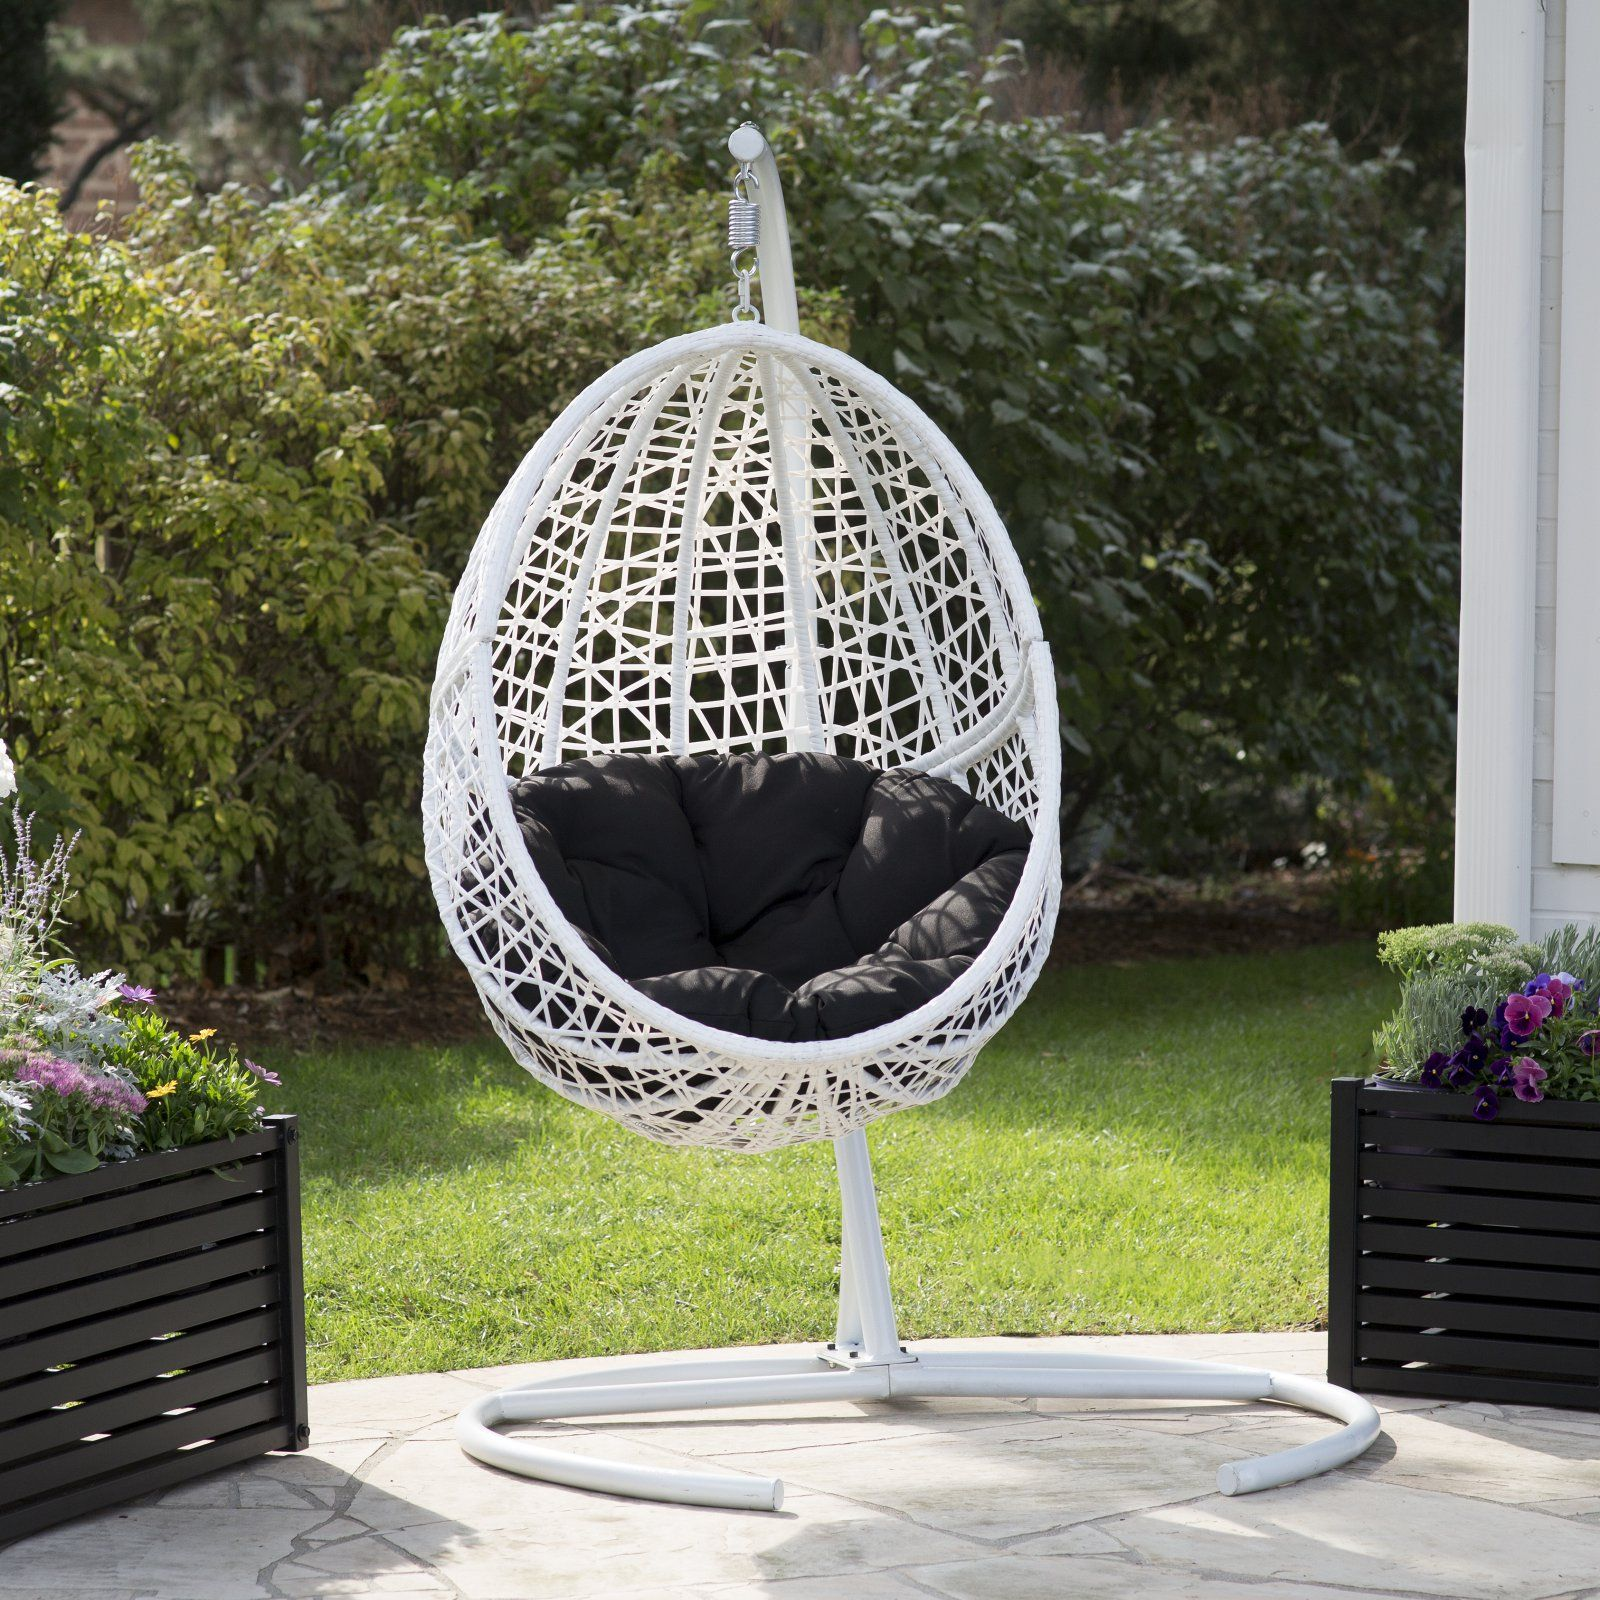 Hanging Chair Outdoor Outdoor Belham Living Resin Wicker Blanca Hanging Egg Chair With